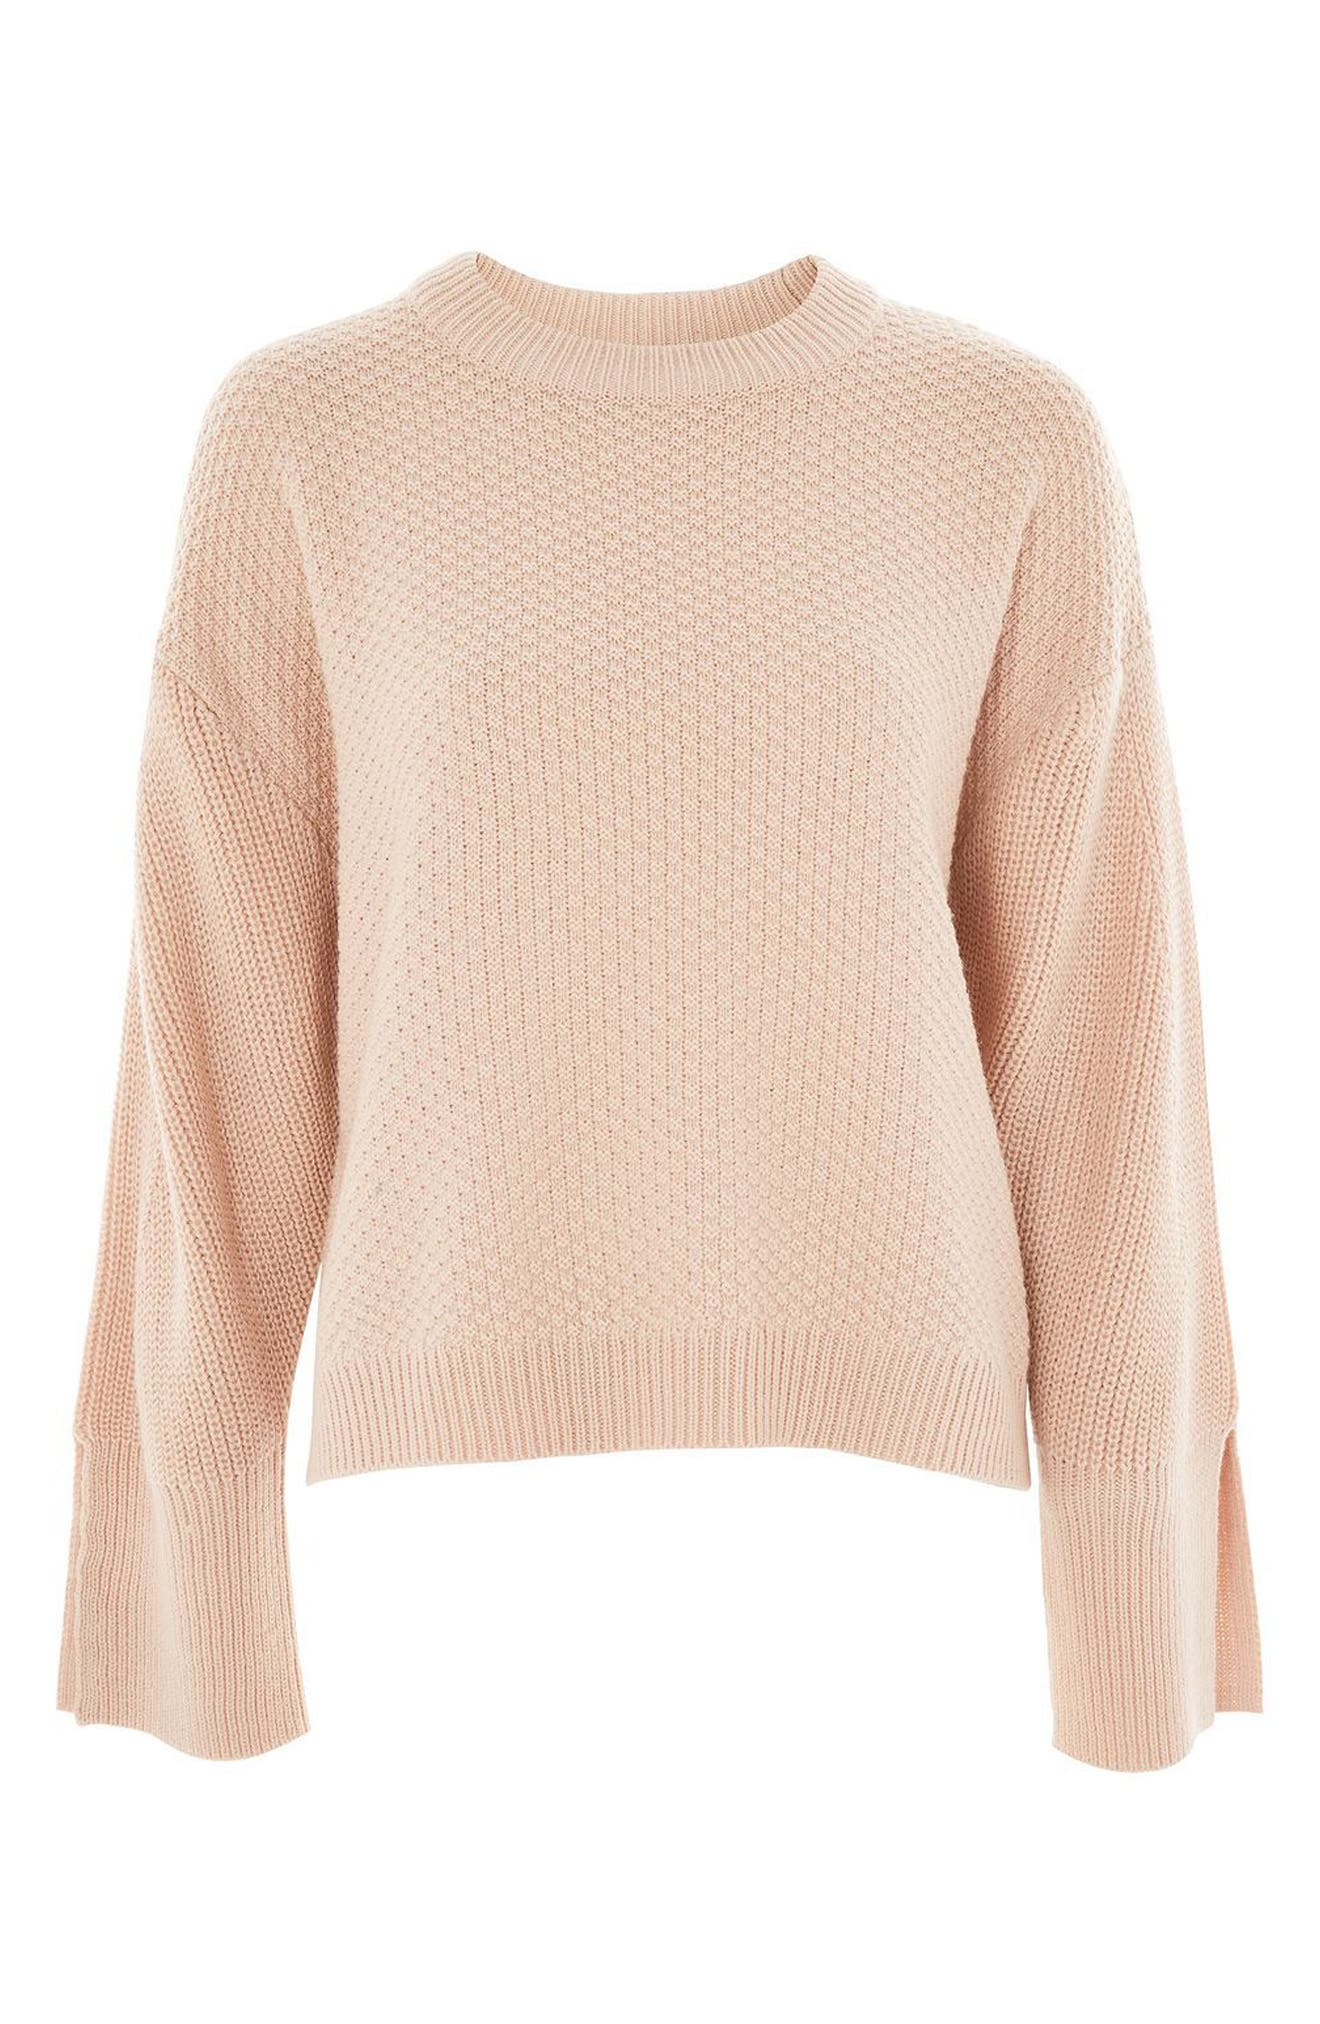 Wide Sleeve Sweater,                             Alternate thumbnail 5, color,                             Nude